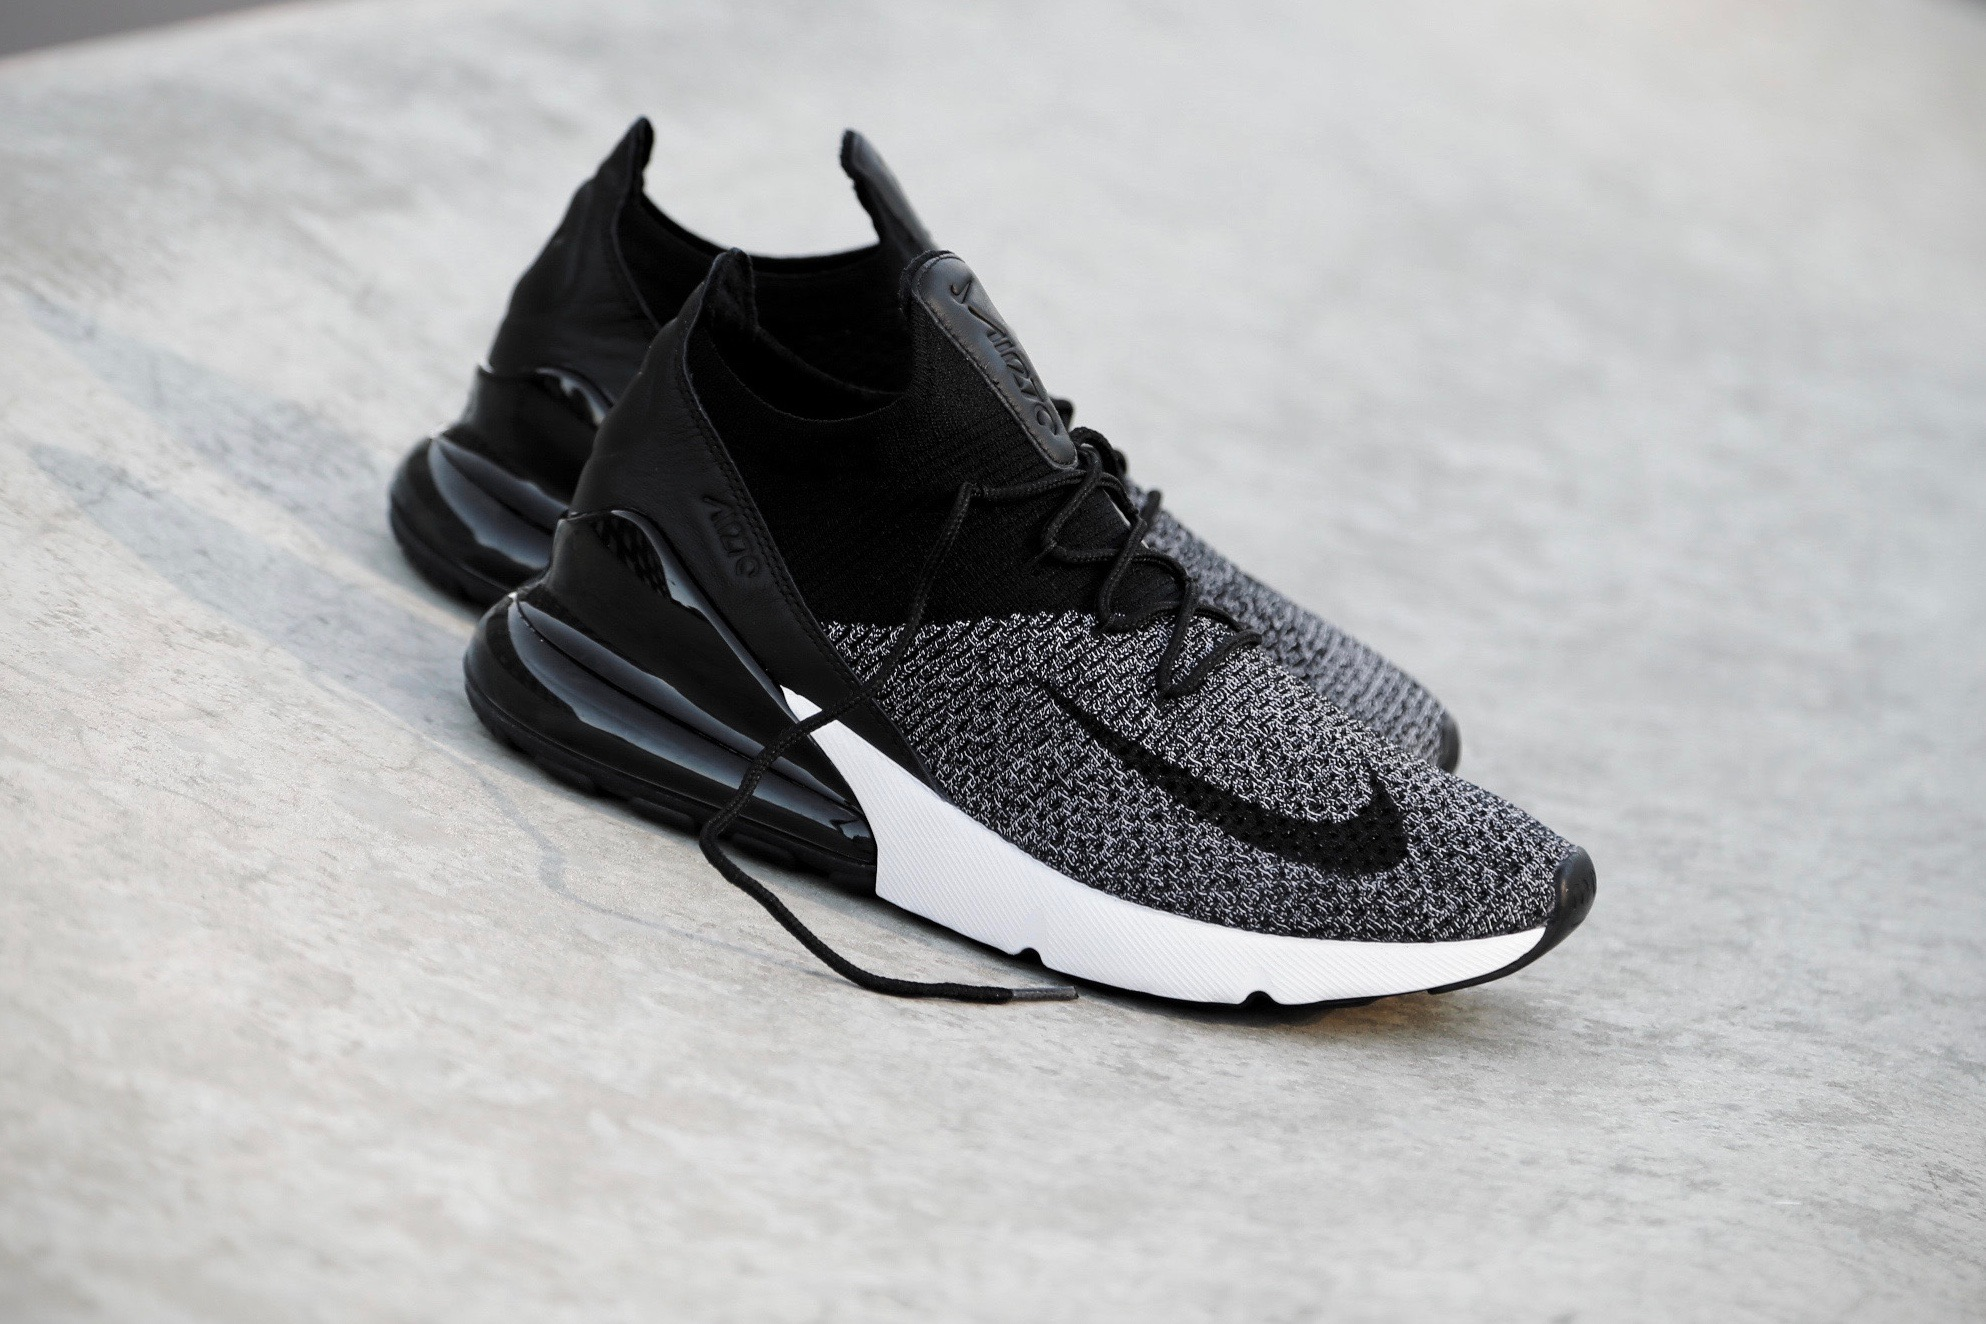 los angeles d6758 b7851 Nike Air Max 270 Flyknit - Black / White